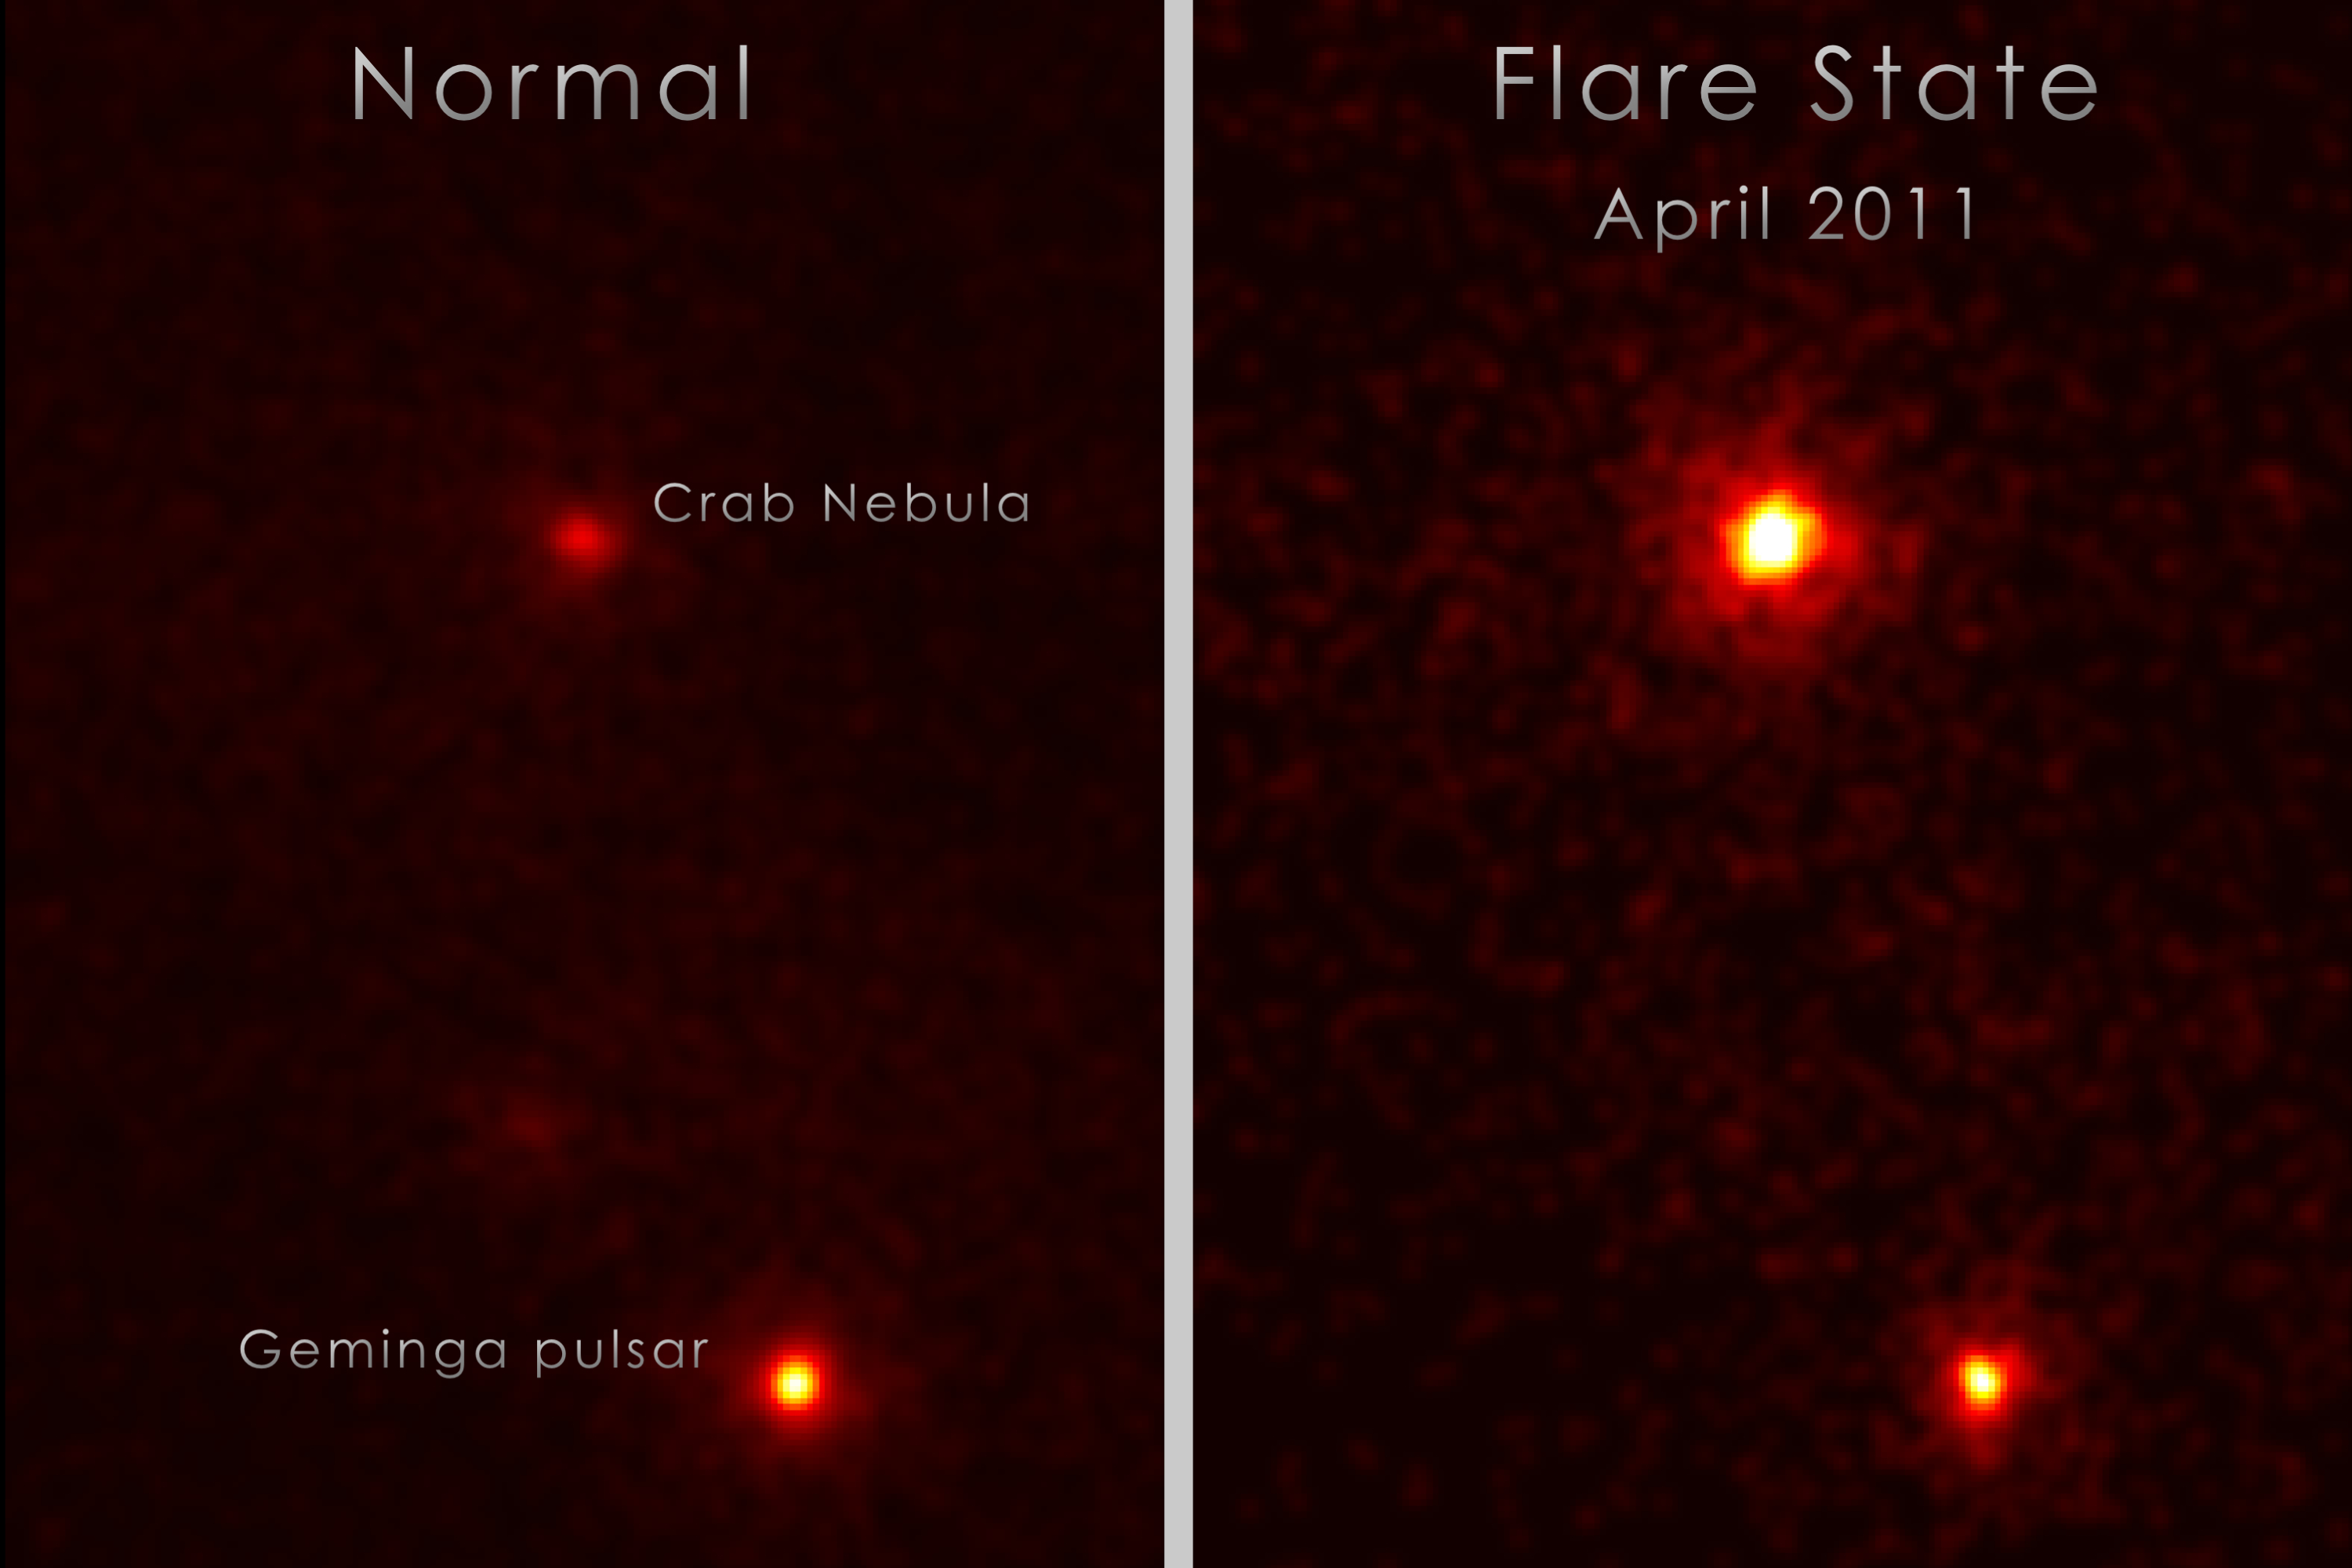 Gamma Glas Fermi Spots Superflares In Crab Nebula Nasa